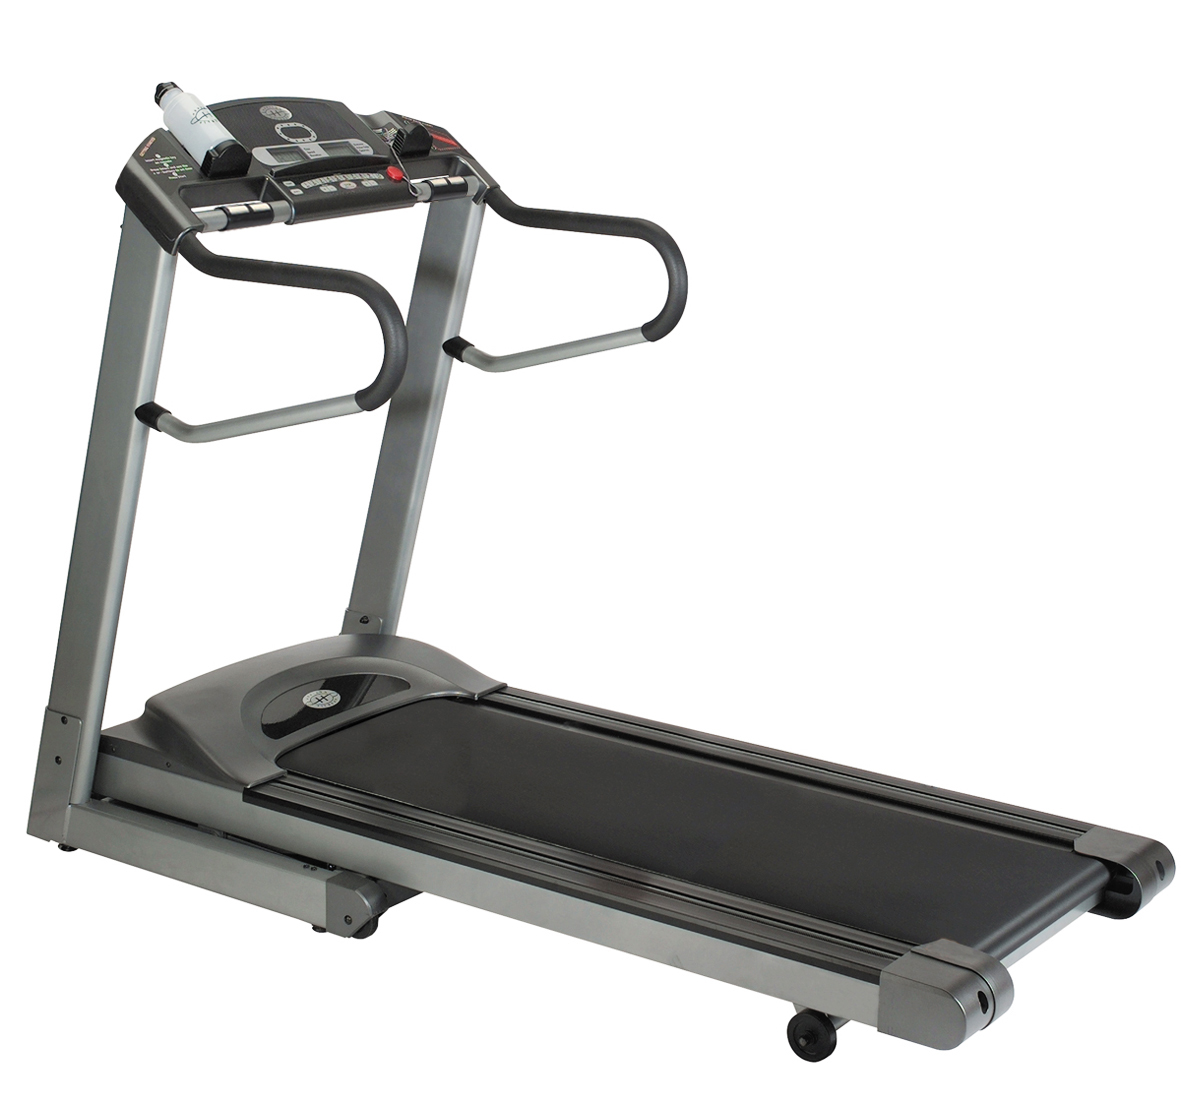 Horizon fitness rct7. 6 assembly & user's manual pdf download.